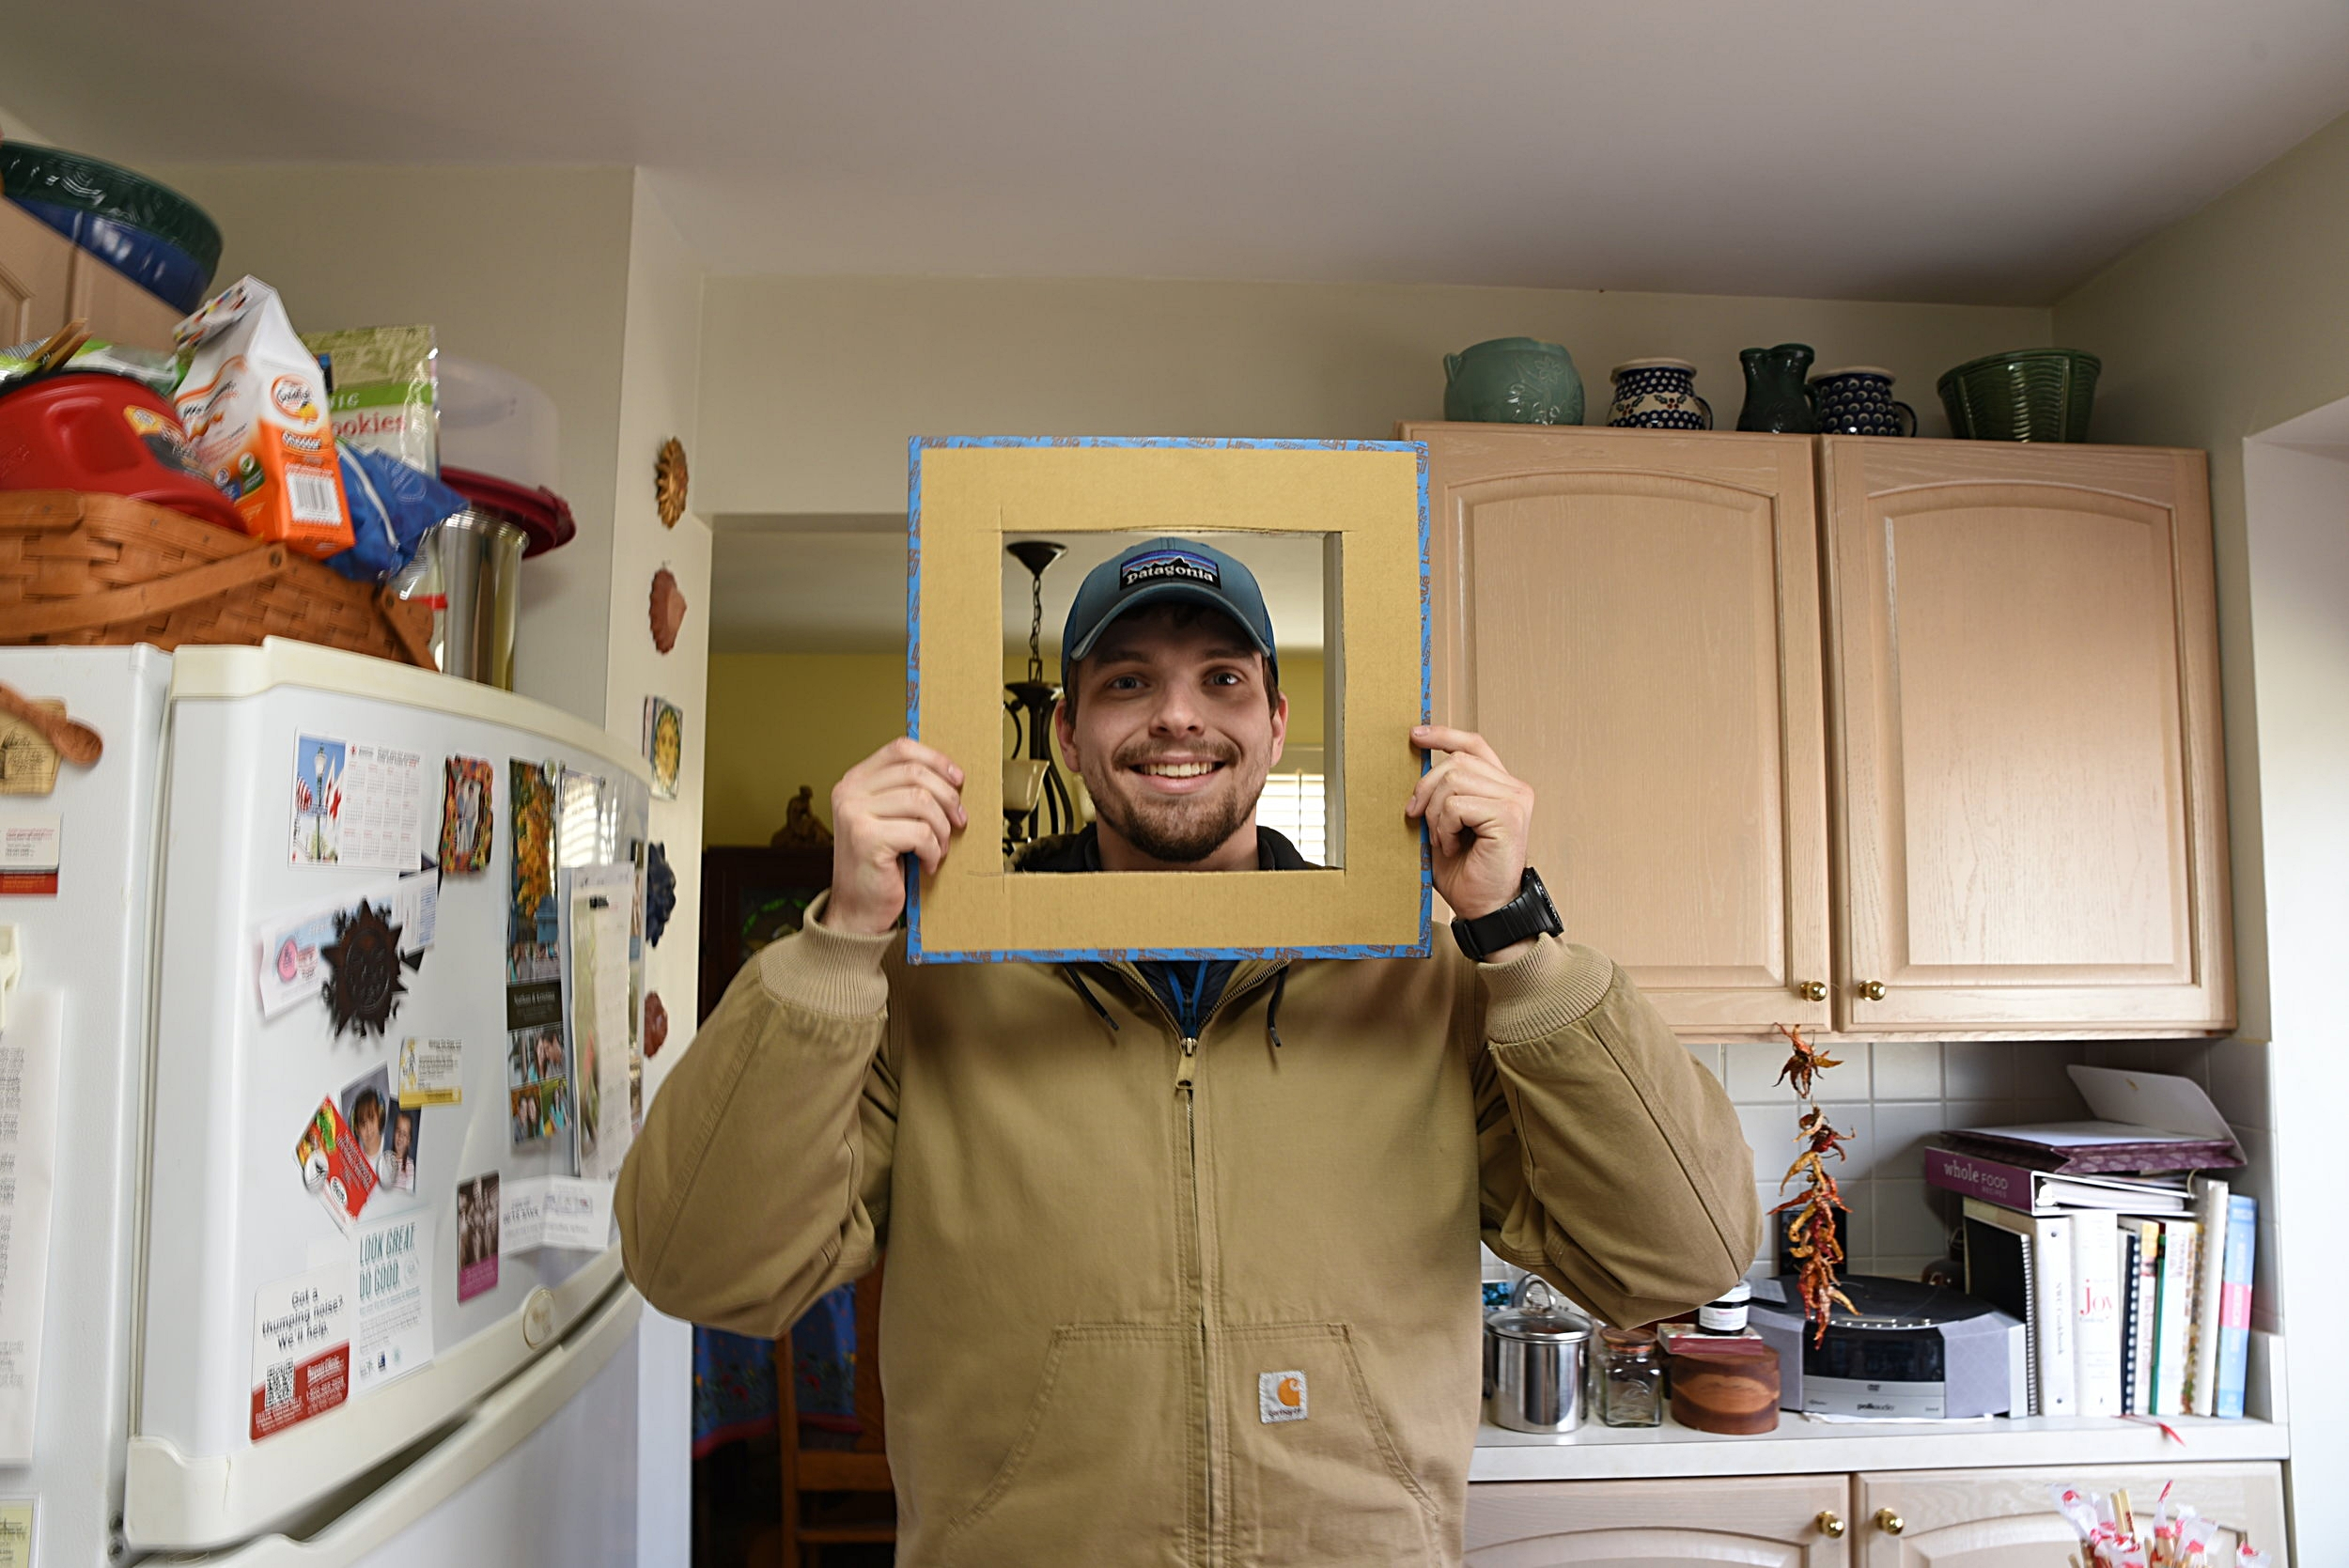 Ian poses for a photo with his cardboard template.